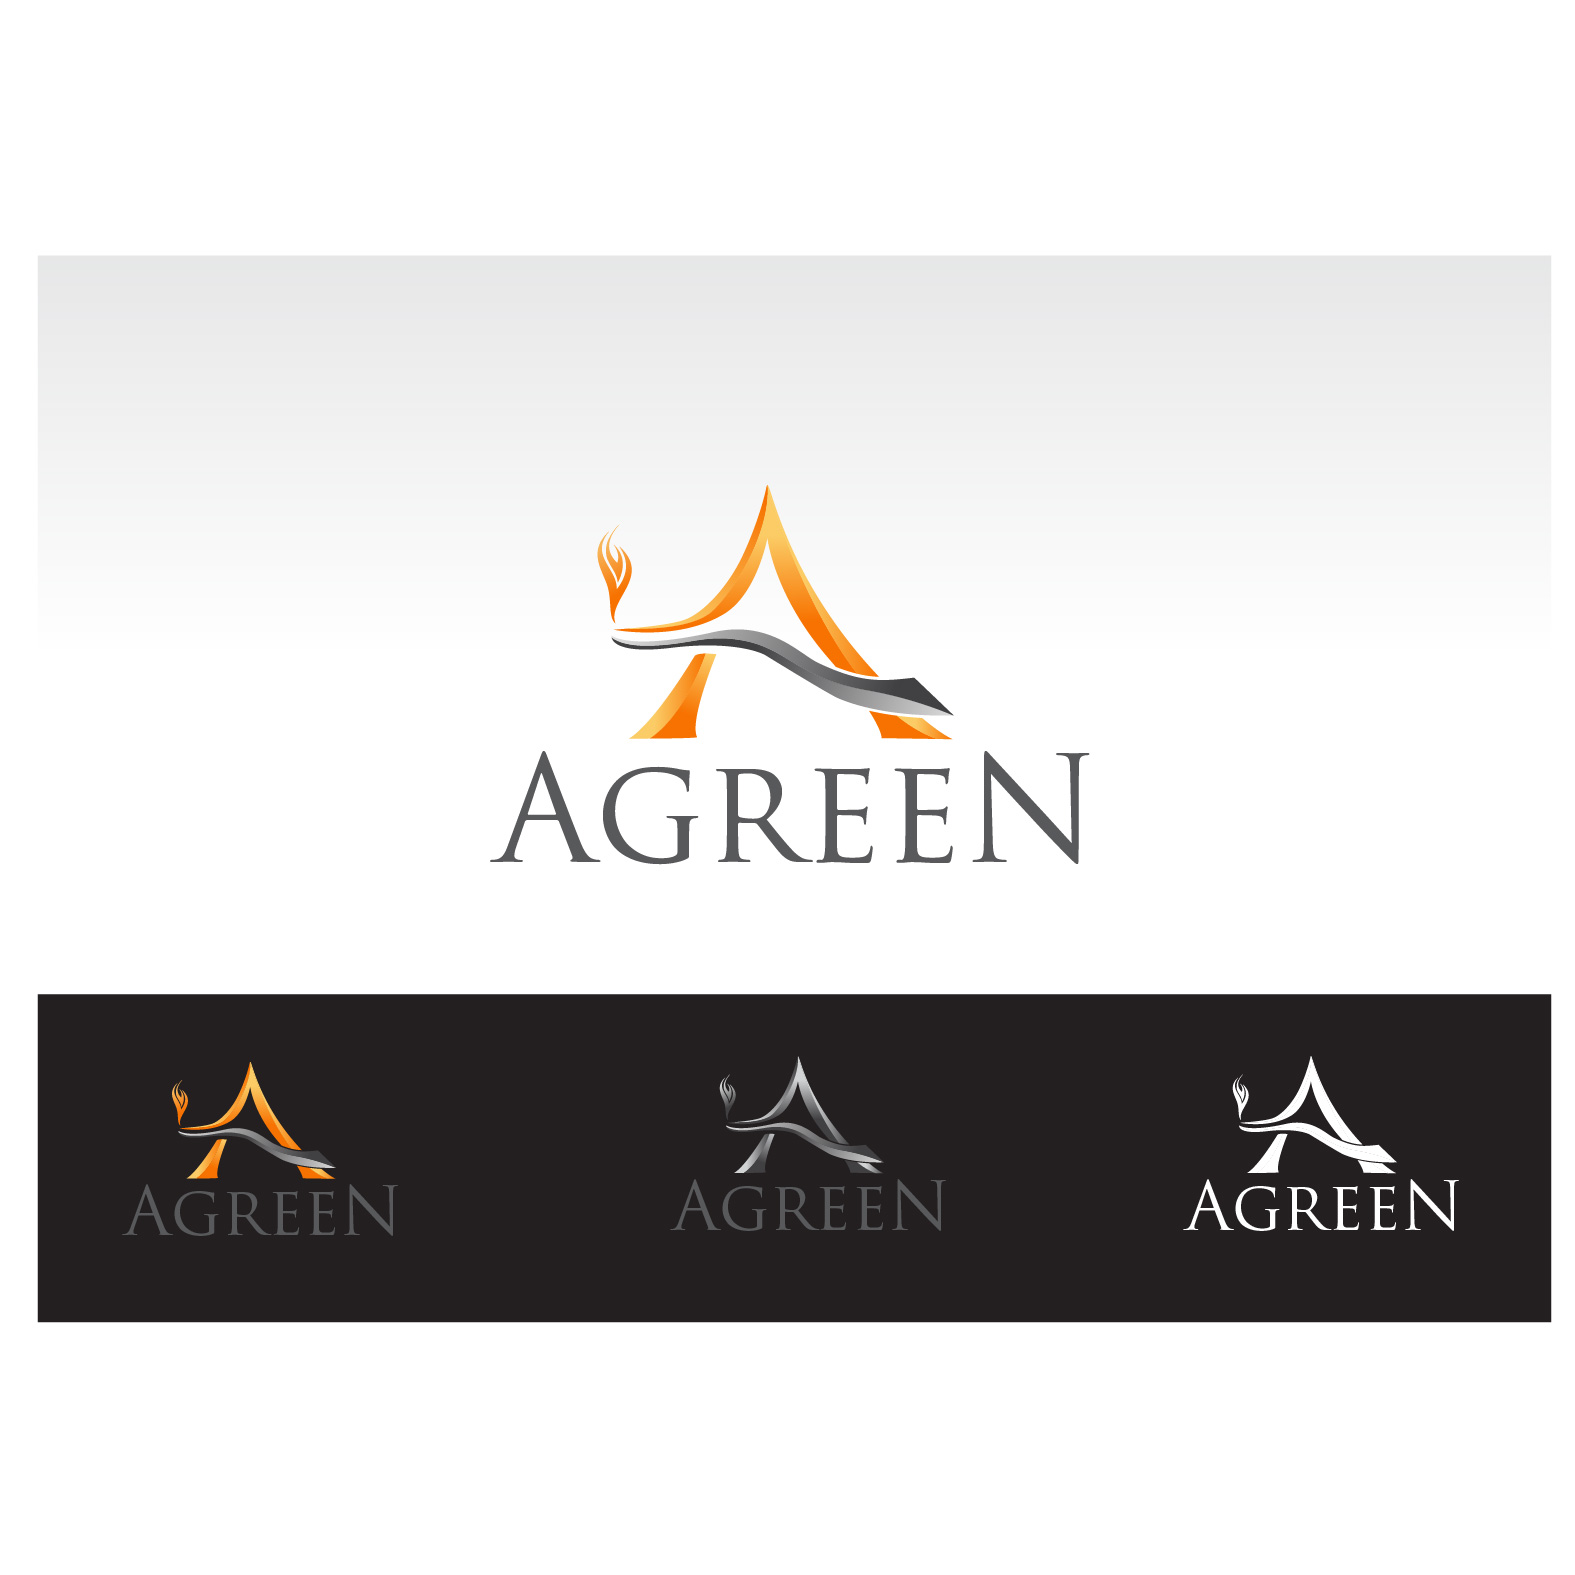 Logo Design by Robert Engi - Entry No. 66 in the Logo Design Contest Inspiring Logo Design for Agreen.